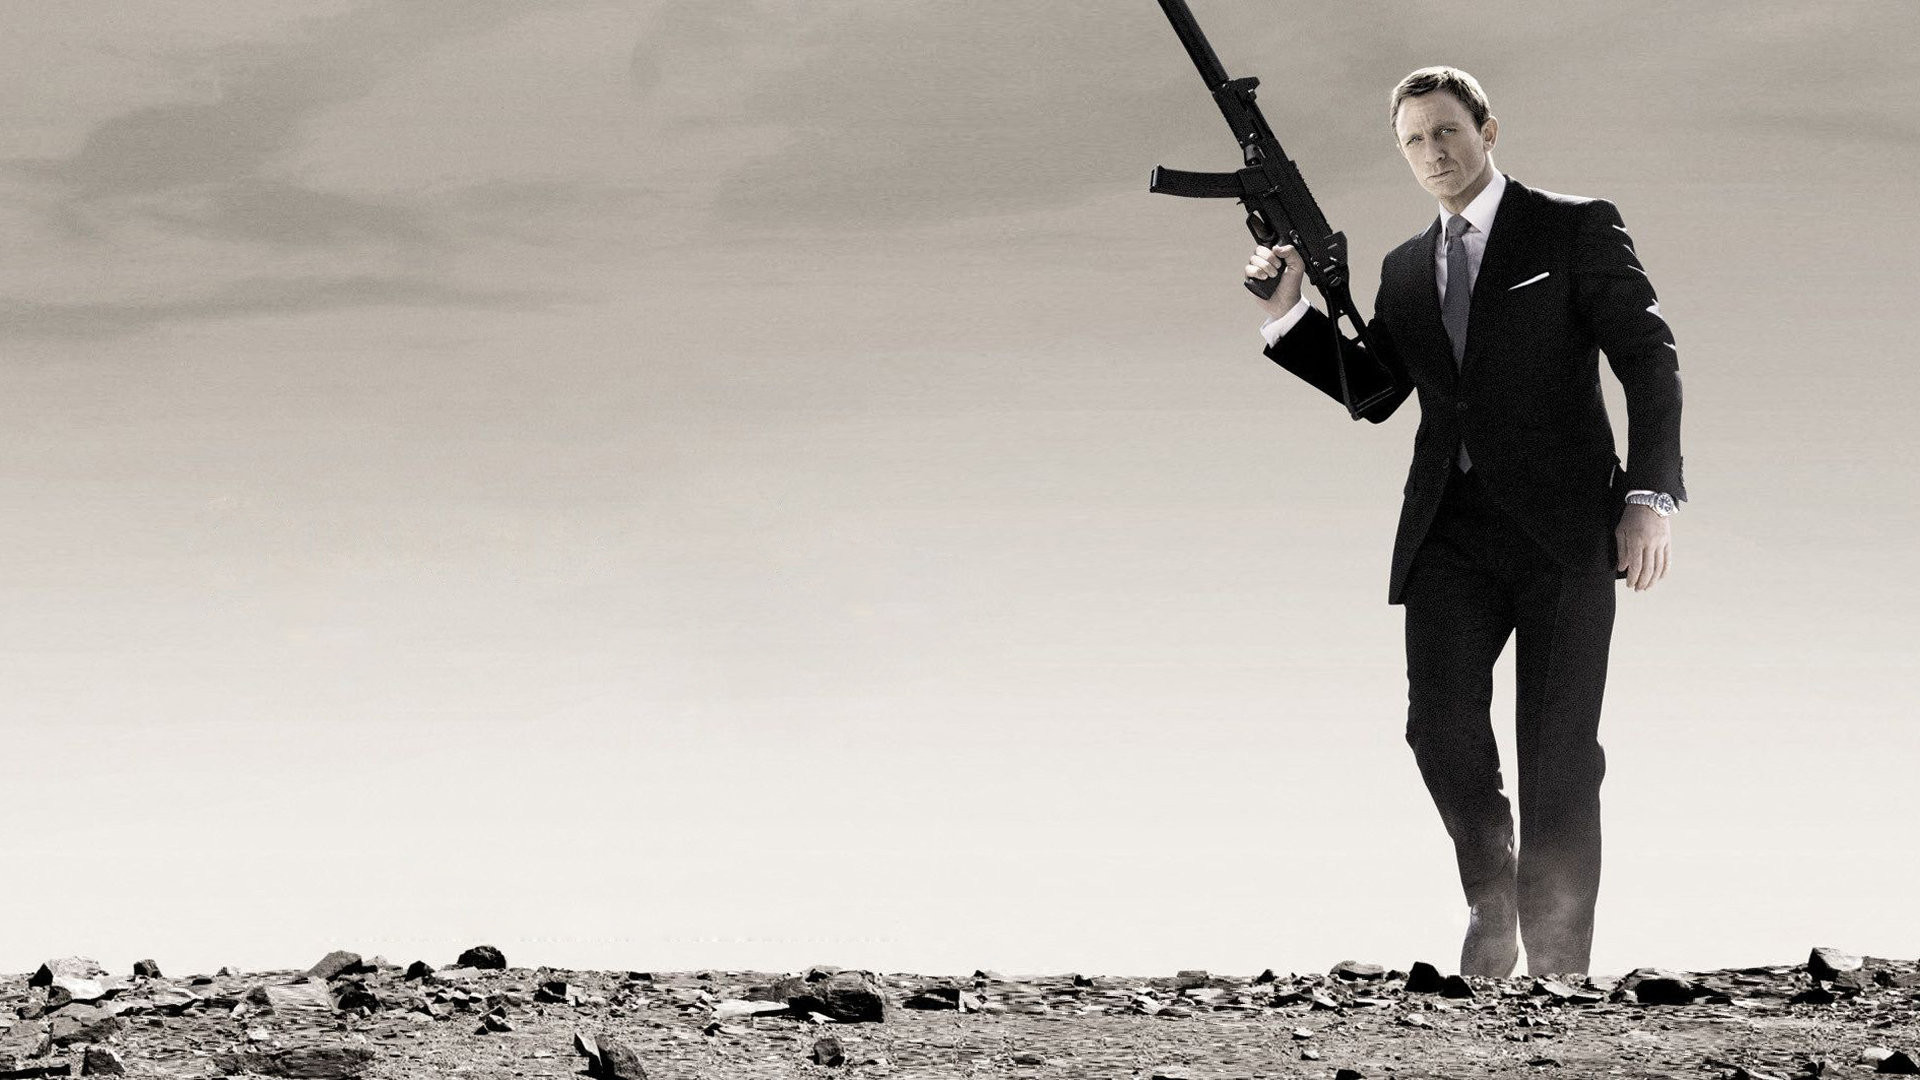 James Bond wallpaper 1920x1080 6909 1920x1080